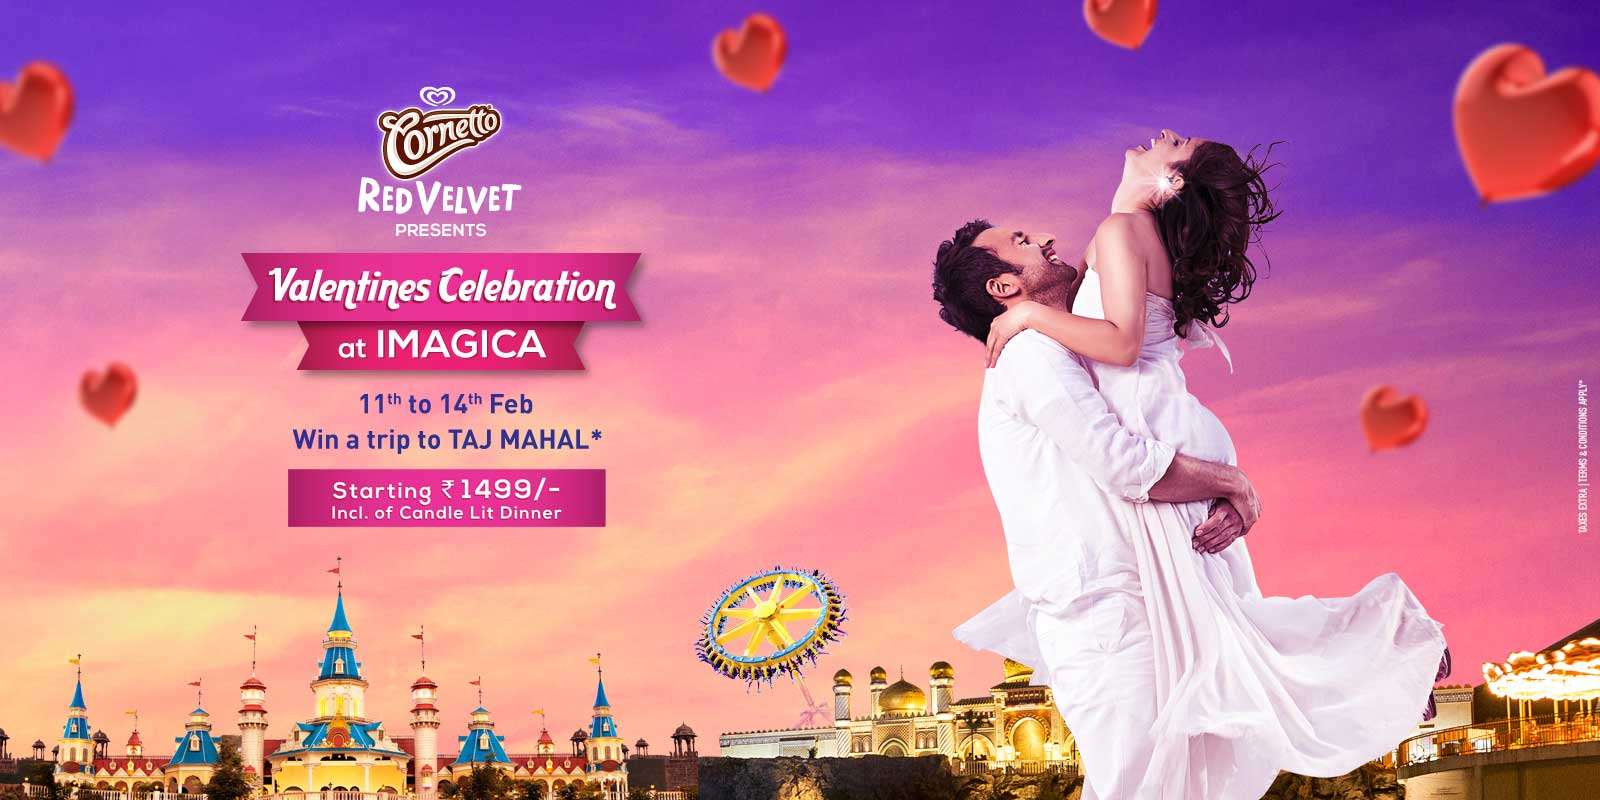 Valentine's Day Special – win a trip to the TAJ MAHAL